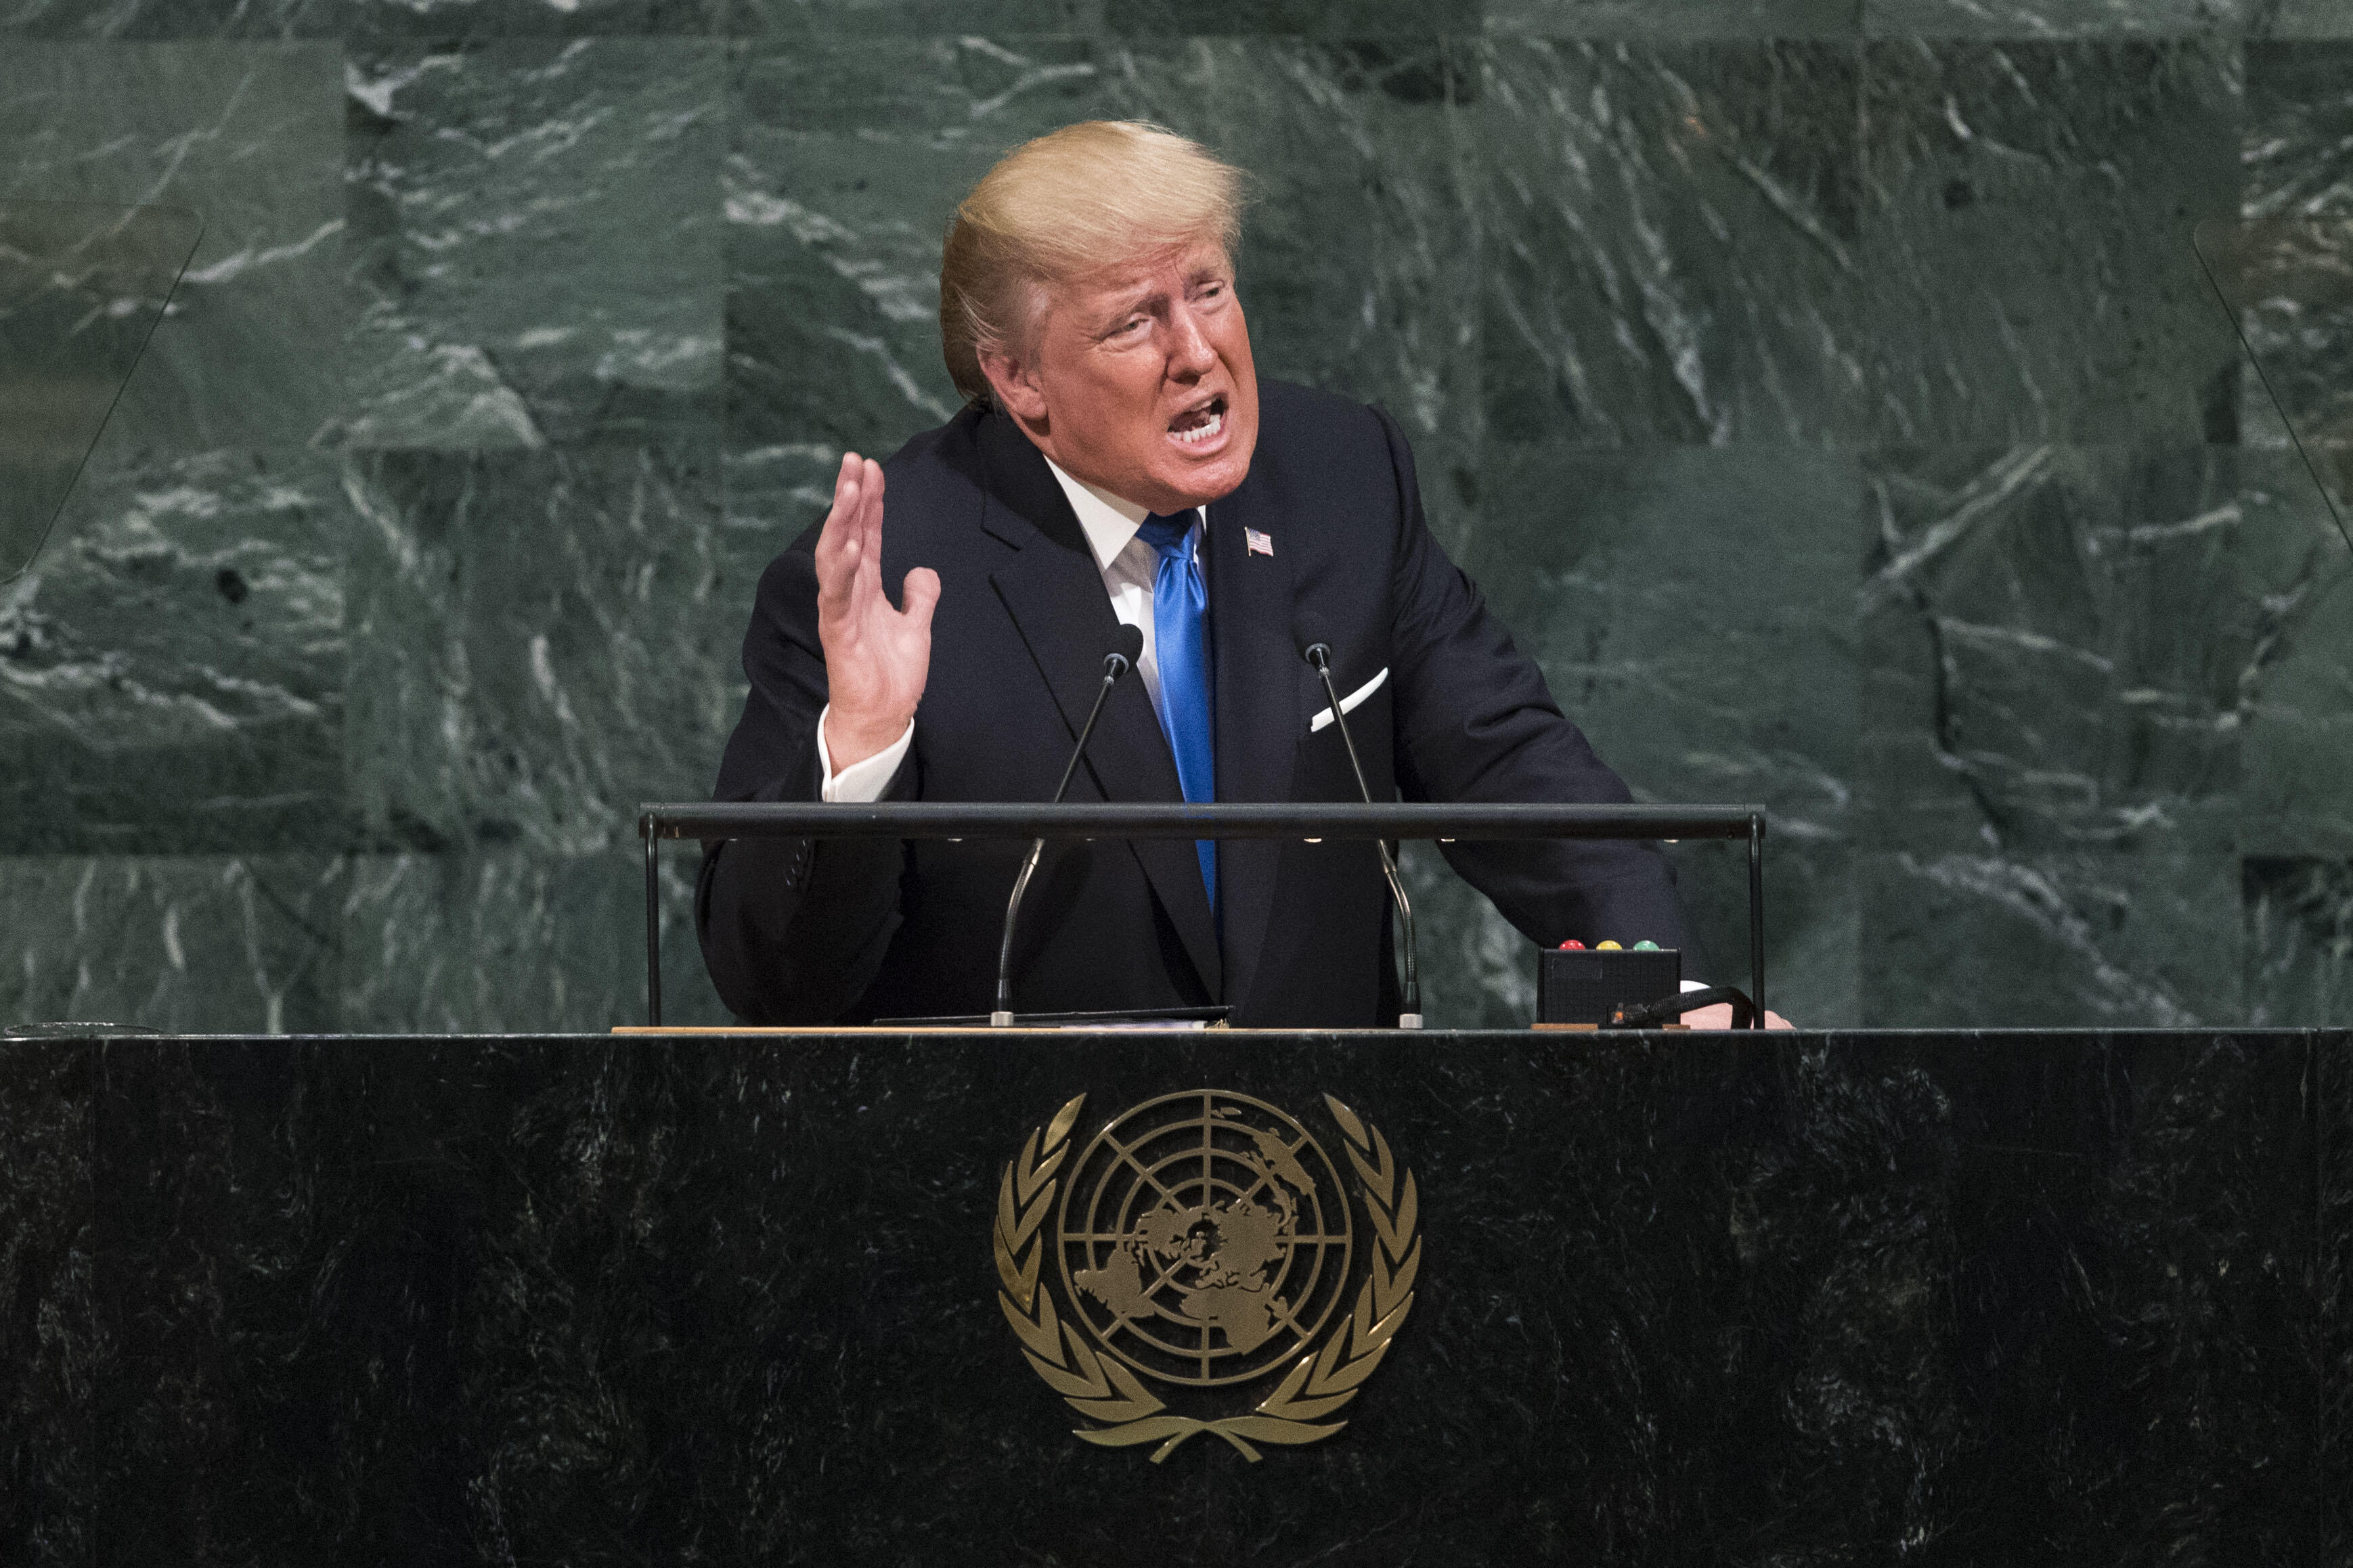 NEW YORK, NY - SEPTEMBER 19: U.S. President Donald Trump addresses the United Nations General Assembly at UN headquarters, September 19, 2017, in New York City. Among the issues facing the assembly, this year are North Korea's nuclear development, violence against the Rohingya Muslim minority in Myanmar and the debate over climate change. (Photo by Drew Angerer/Getty Images)